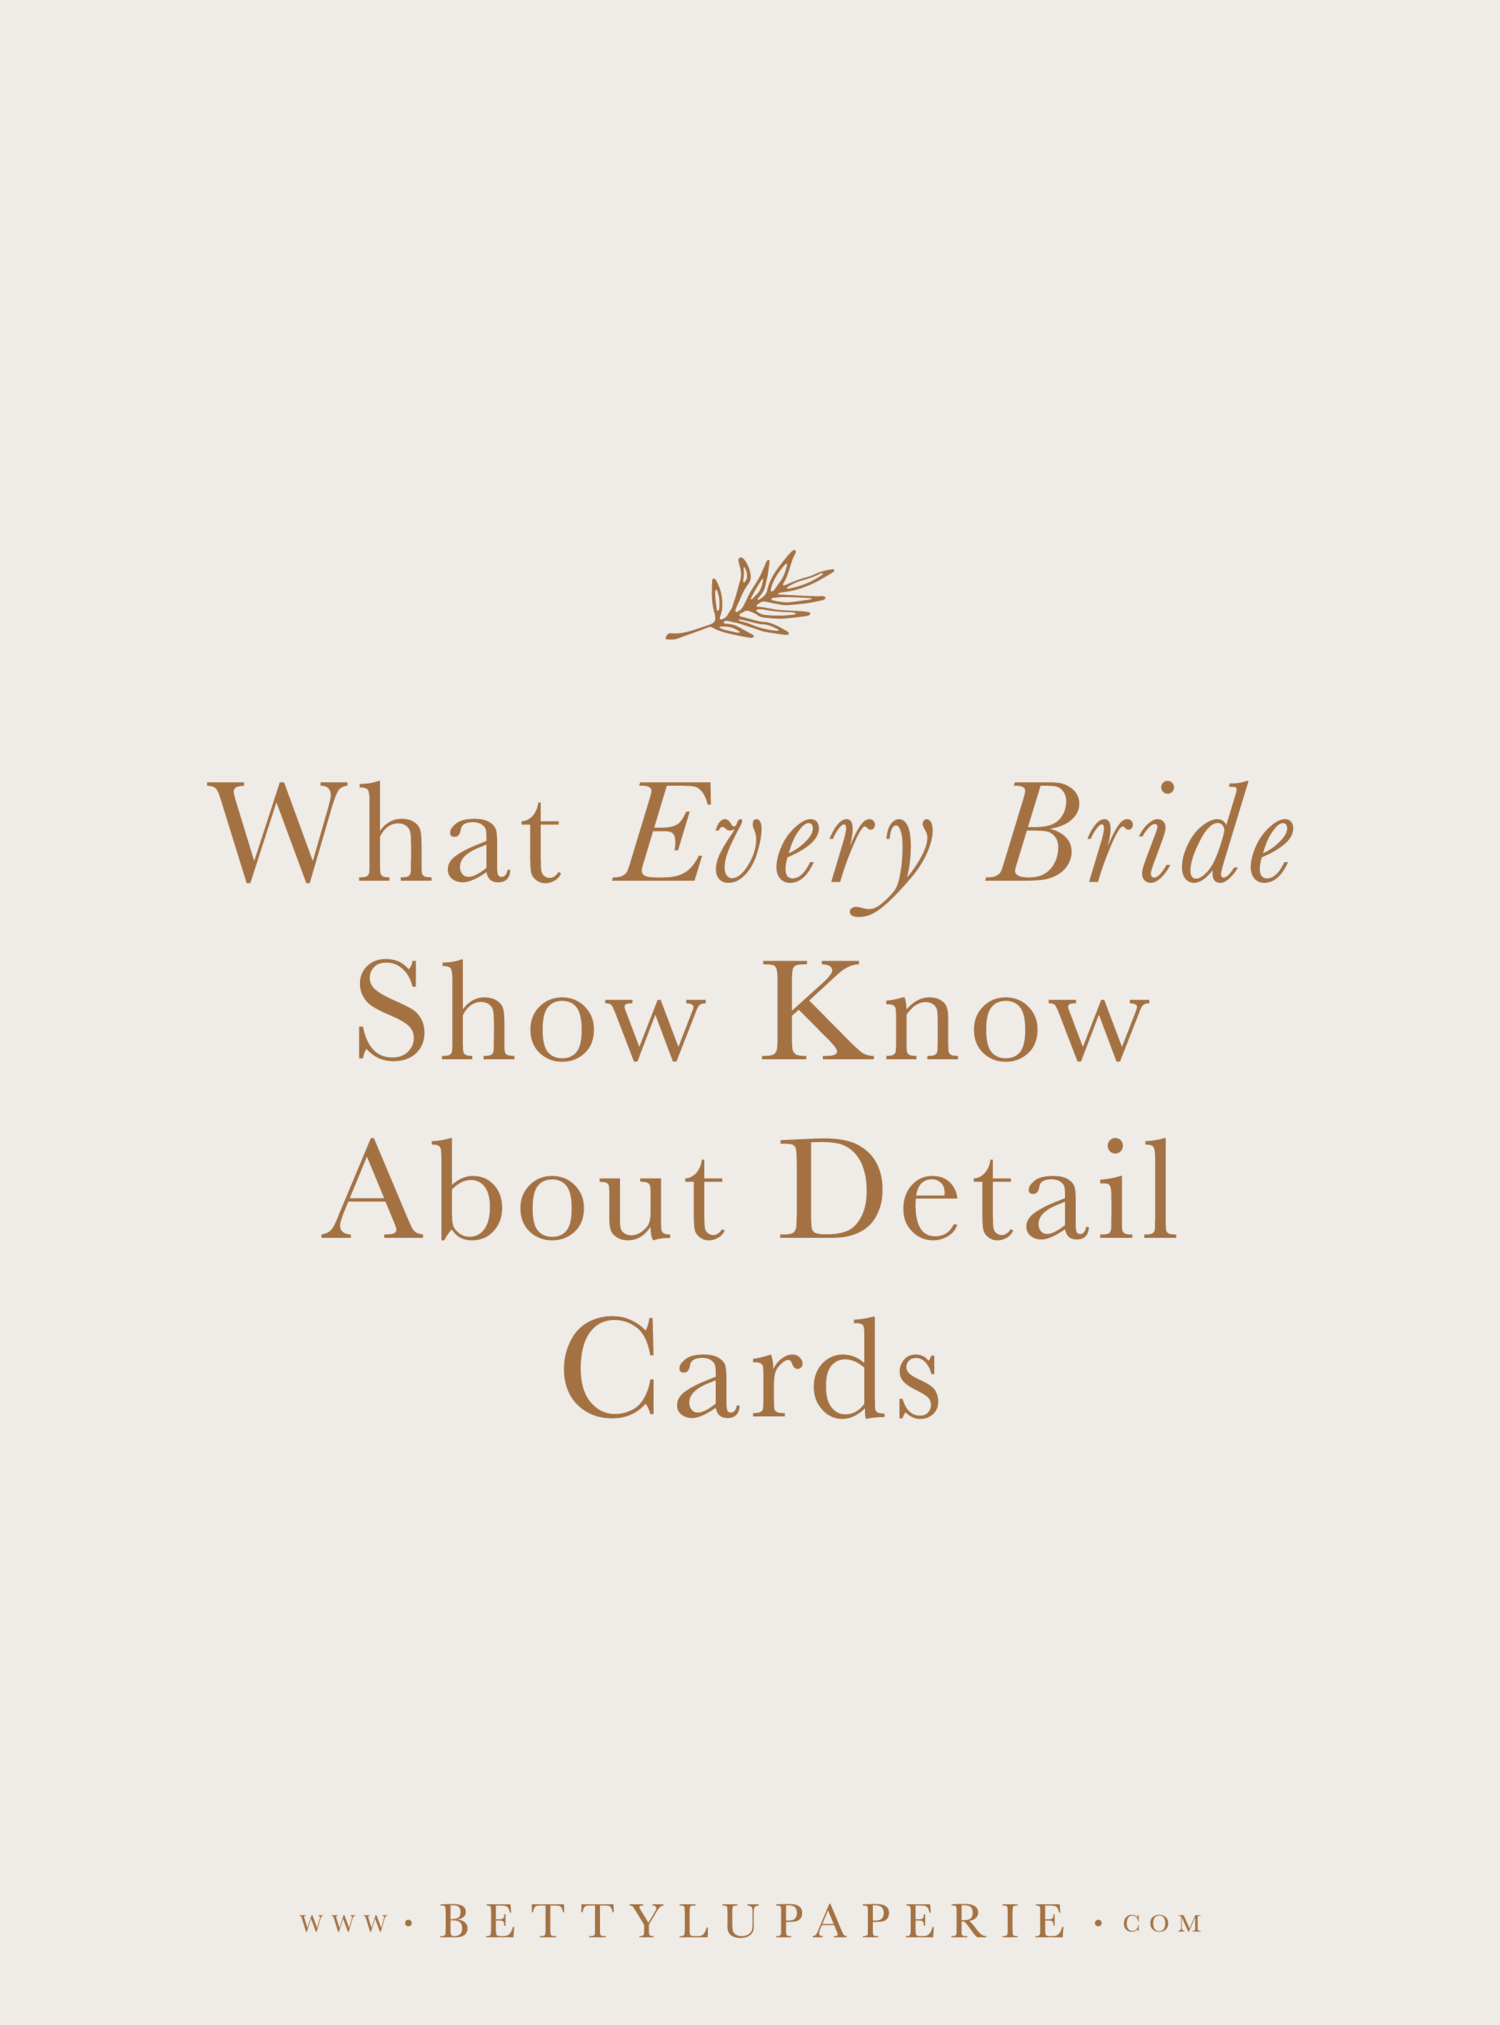 What Every Bride Should Know About Wedding Detail Cards